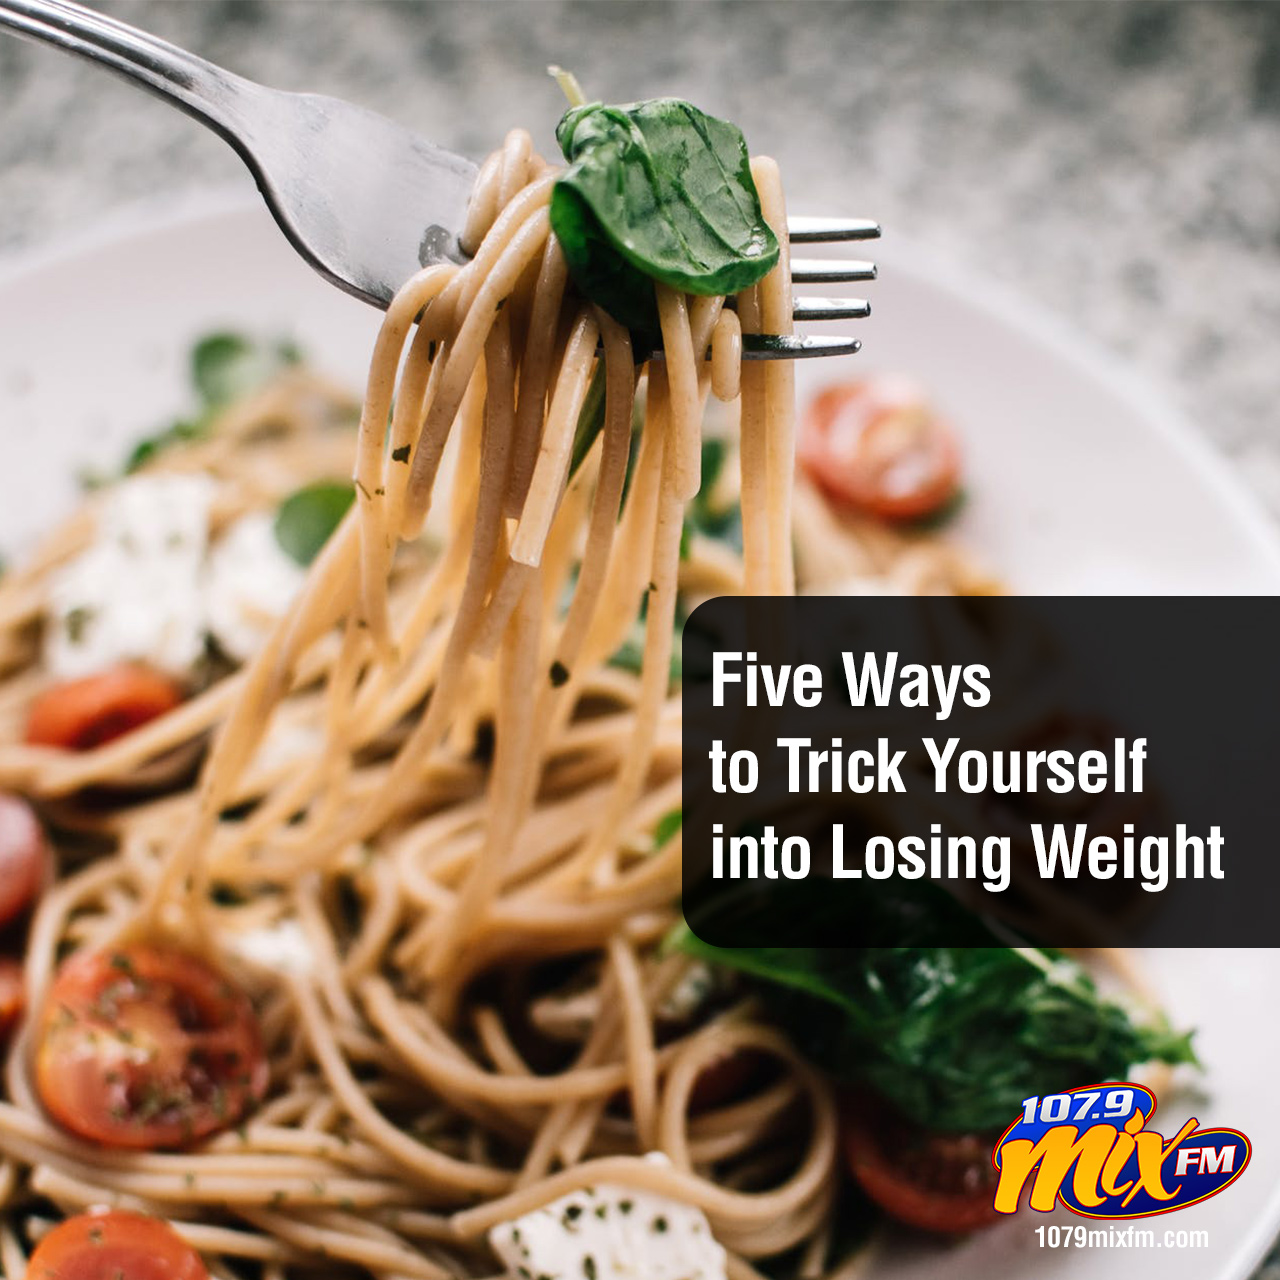 Five Ways to Trick Yourself into Losing Weight